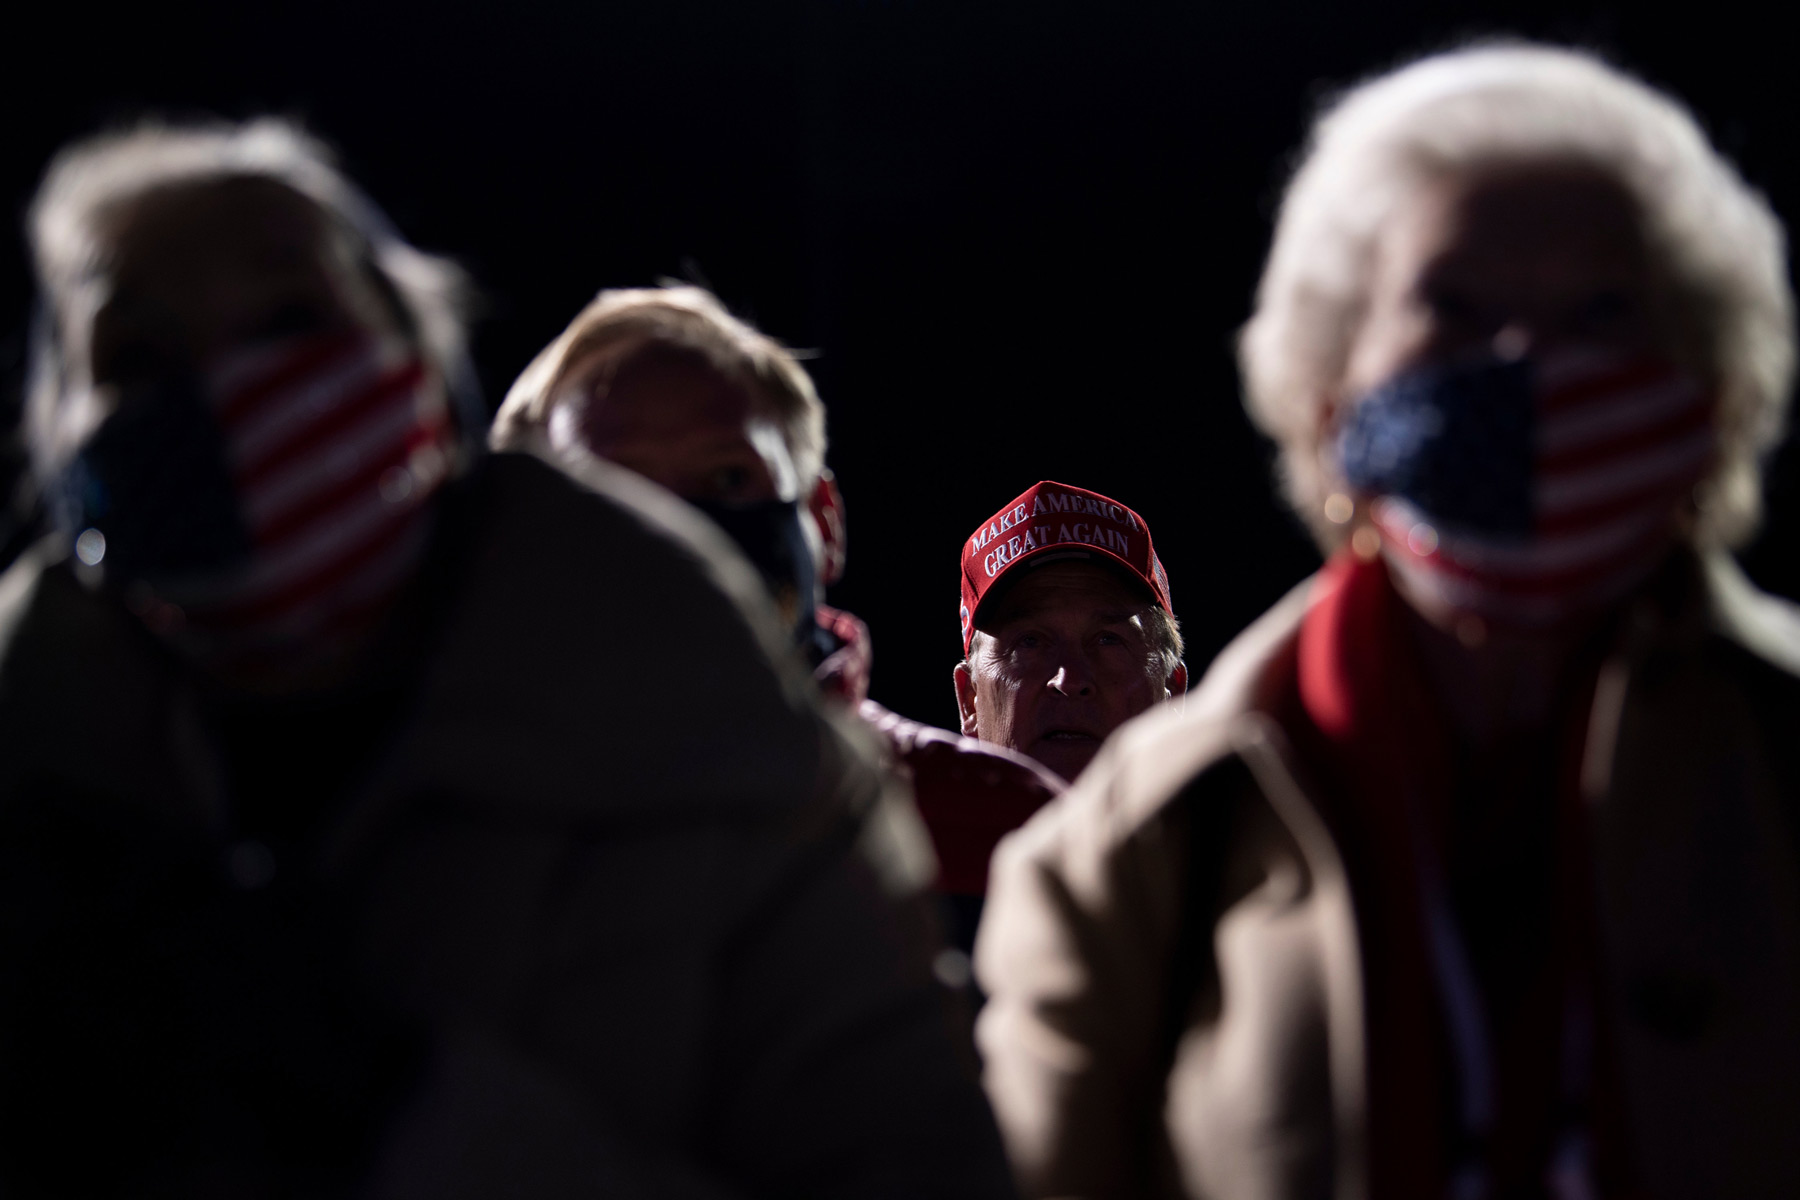 Supporters listen to US President Donald Trump speak at a Make America Great Again rally at Eppley Airfield on October 27, 2020, in Omaha, Nebraska. (Photo by Brendan Smialowski / AFP) (Photo by BRENDAN SMIALOWSKI/AFP via Getty Images)